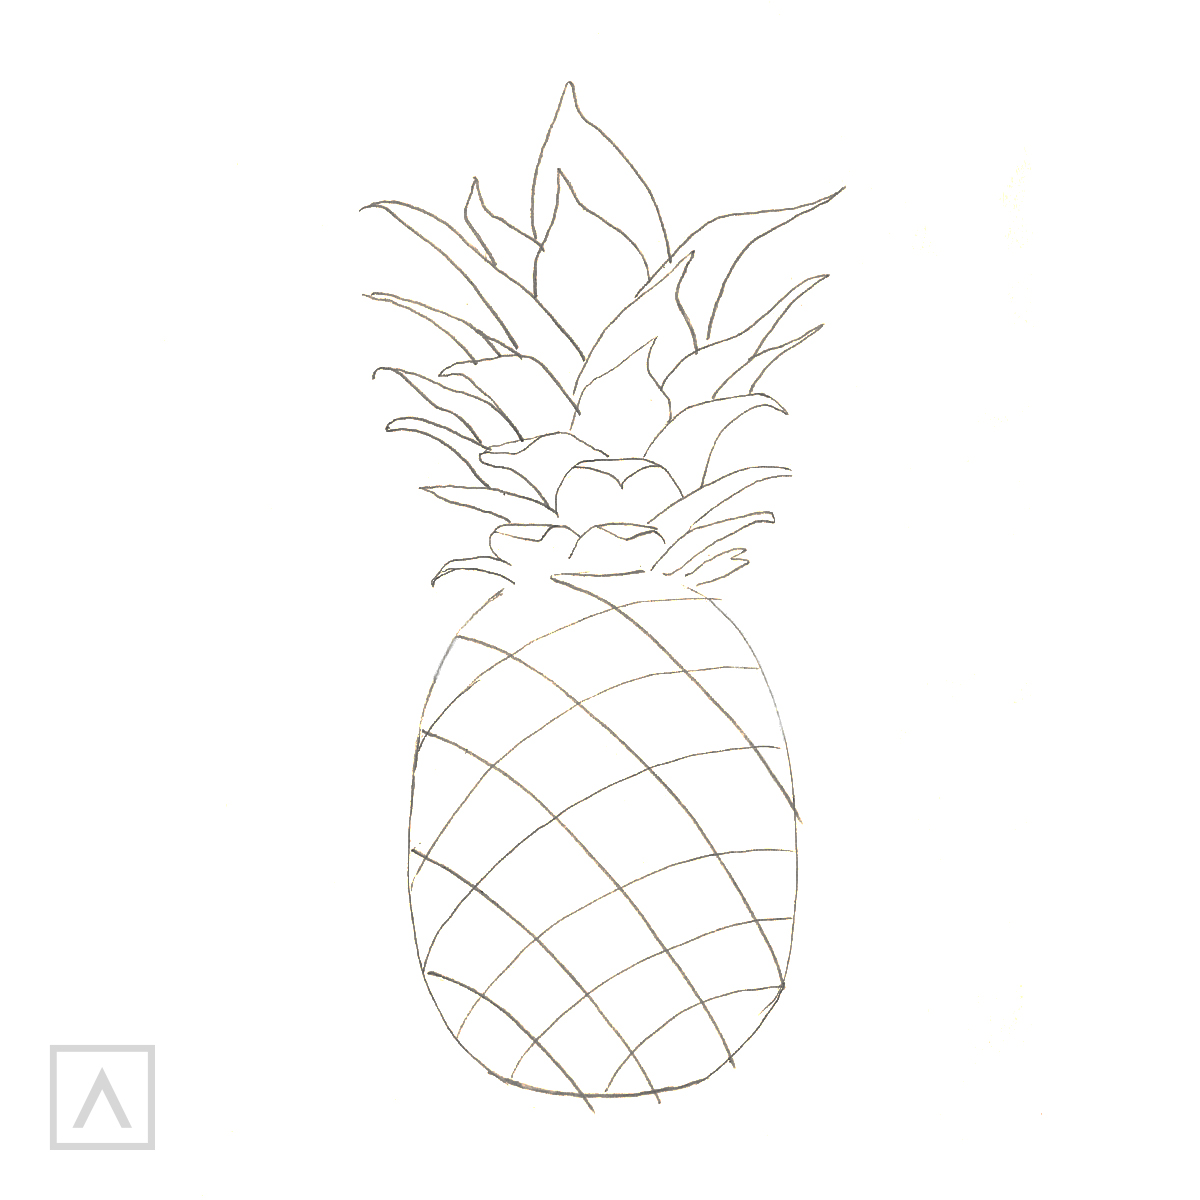 Pineapple drawing. Step 4